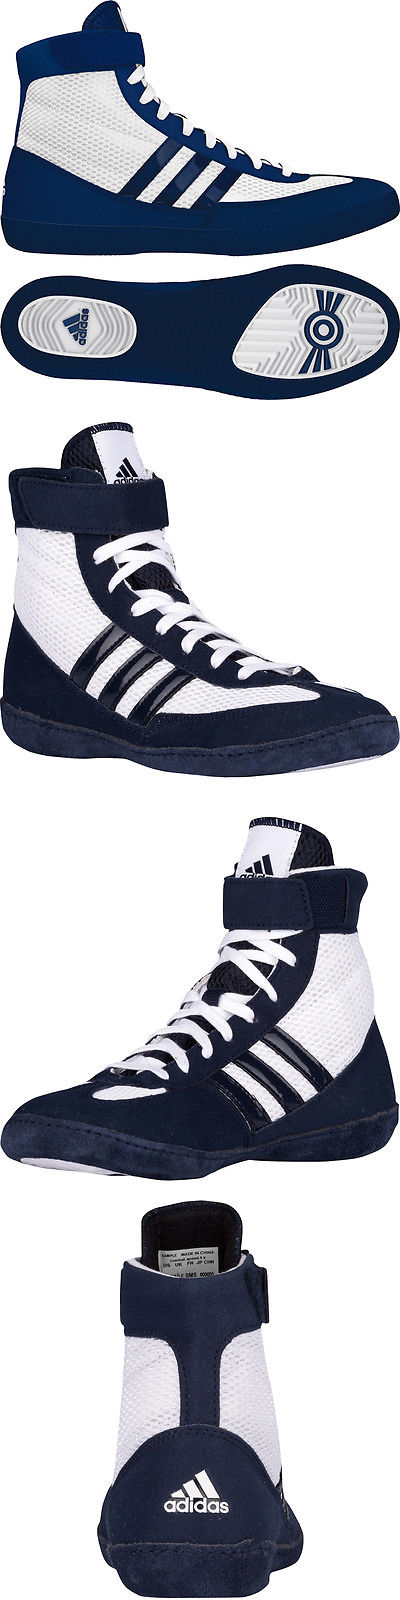 892969ae6c4738 Footwear 79799  Adidas Combat Speed 4 Wrestling Shoes - White Navy BUY IT  NOW ONLY   78.0